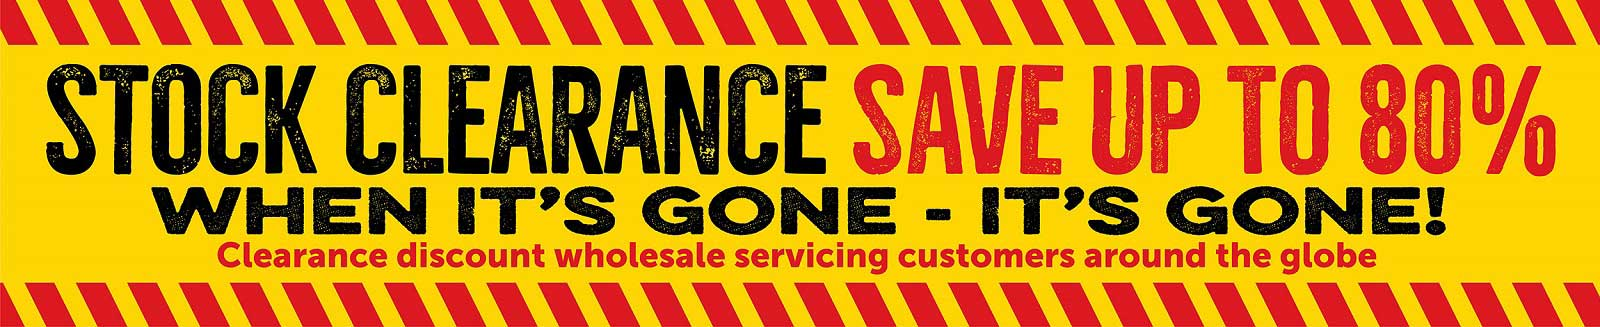 Clearance items wholesaler